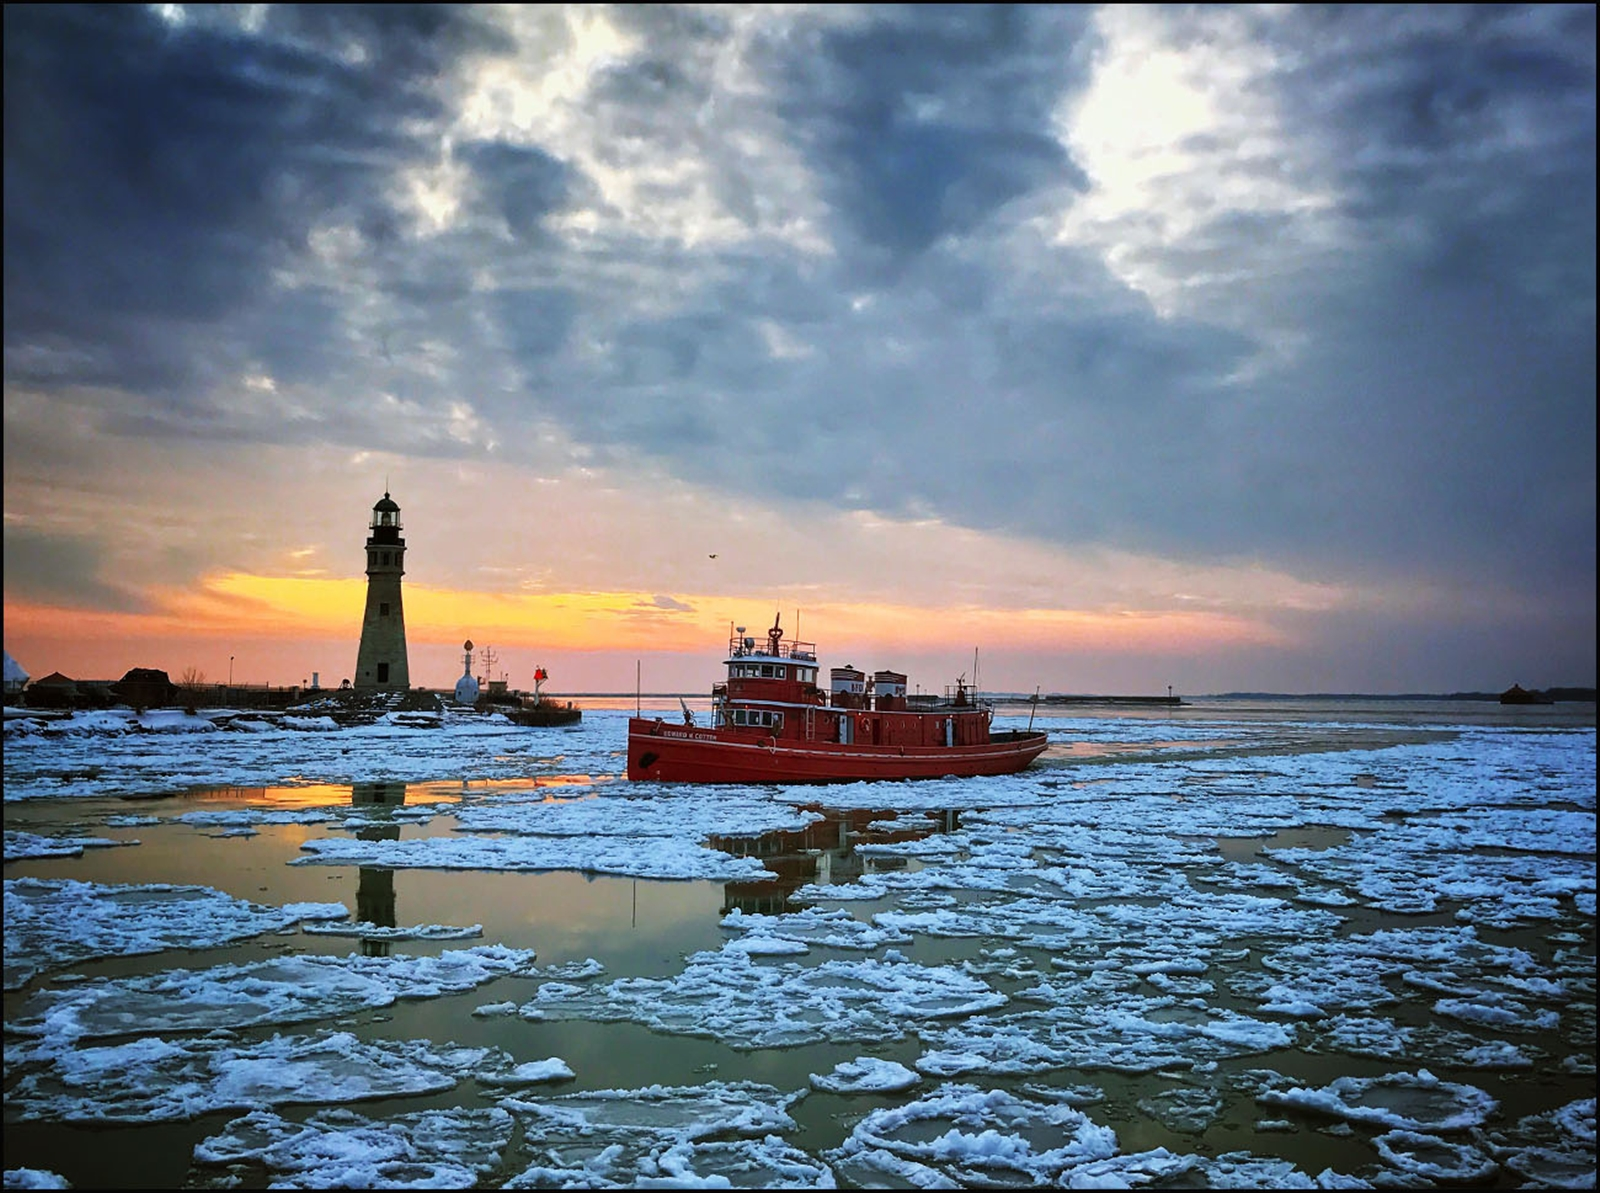 The Buffalo fireboat Edward M. Cotter moves past the lighthouse at sunset as it breaks the ice in the Buffalo River.